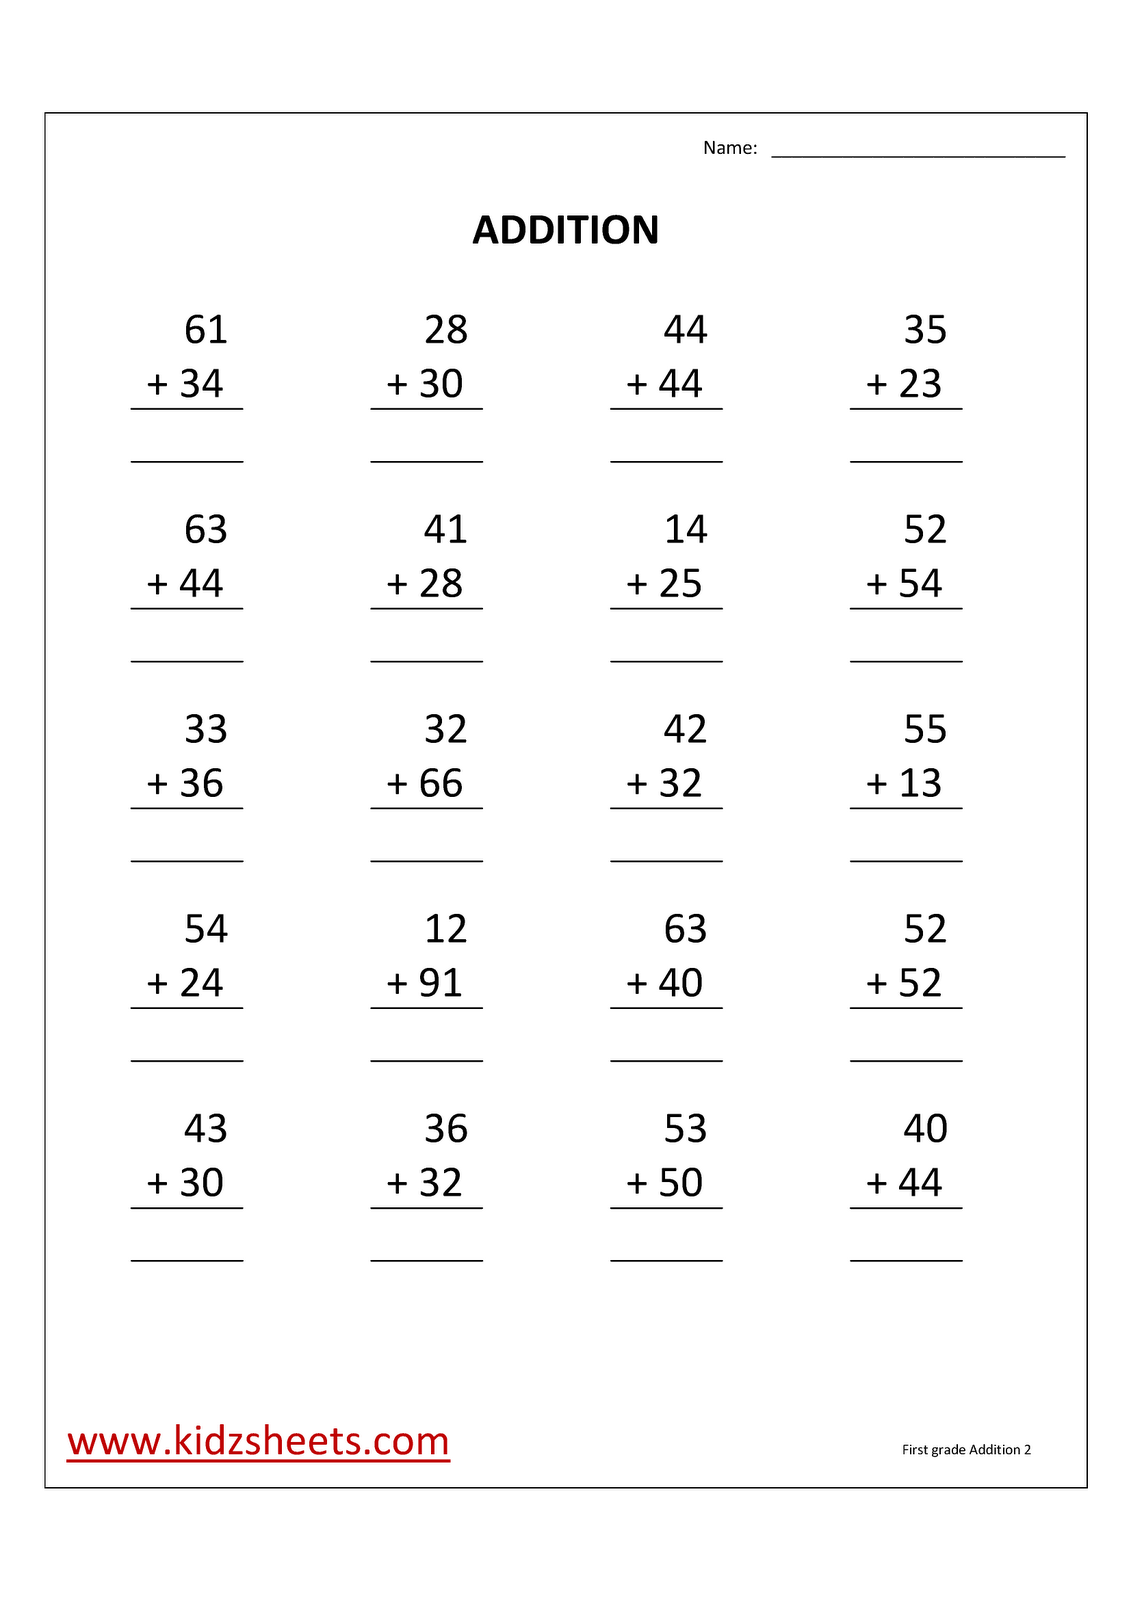 Worksheet Addition For First Grade for 1st grade scalien addition scalien